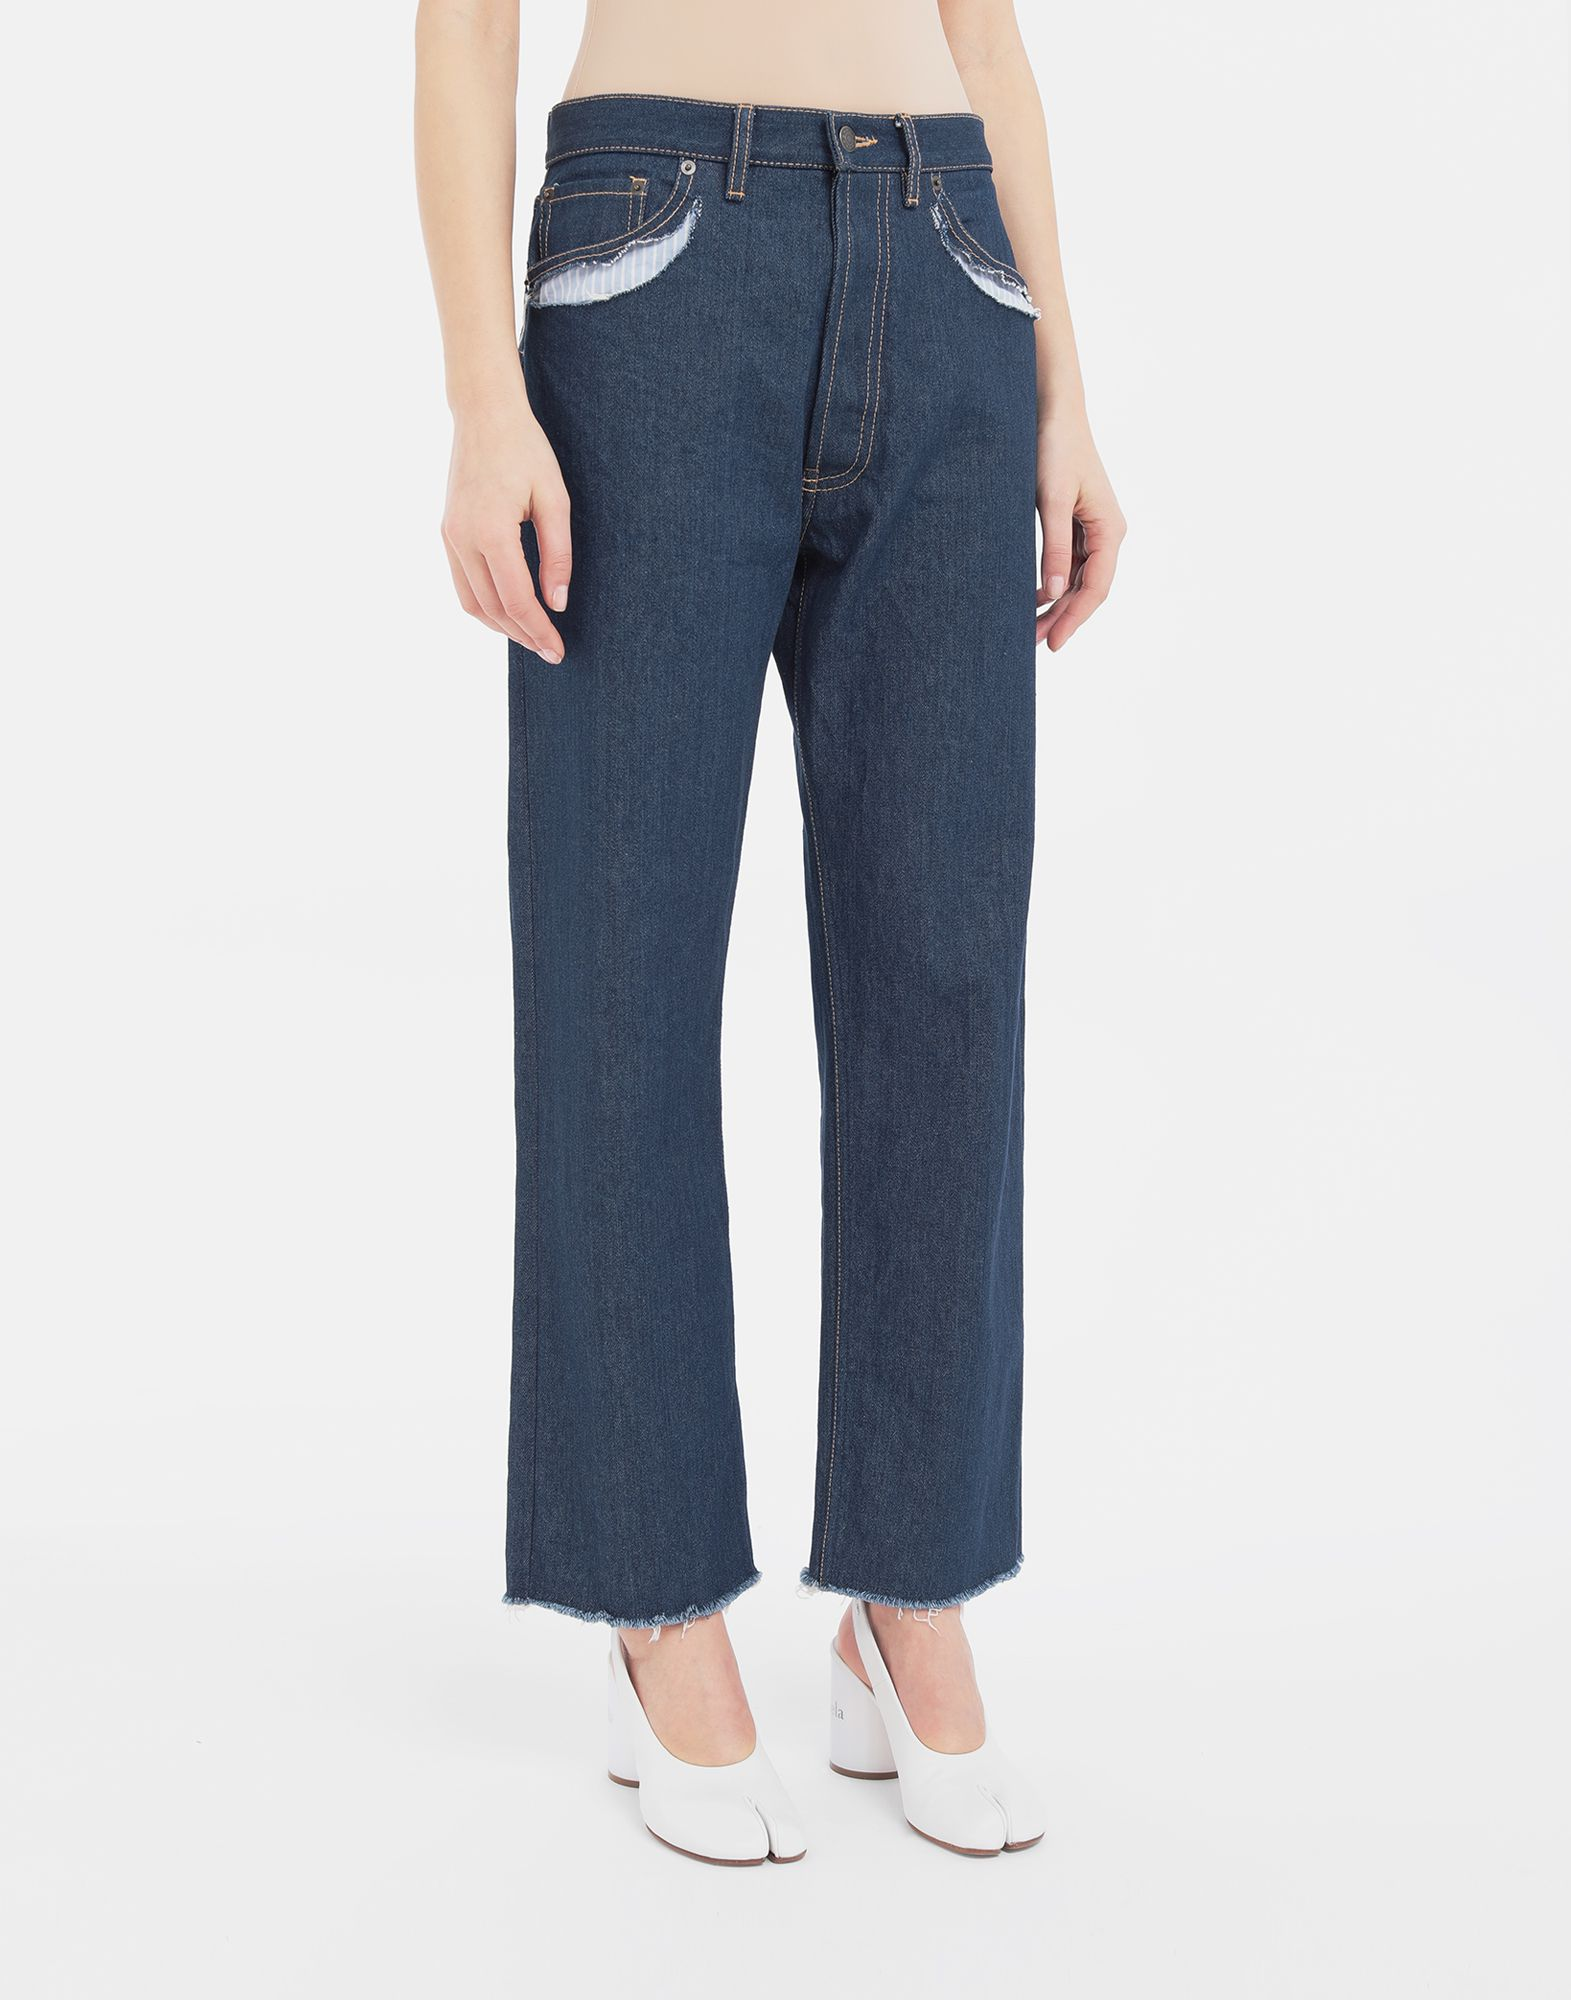 MAISON MARGIELA Décortiqué denim pants Jeans Woman r